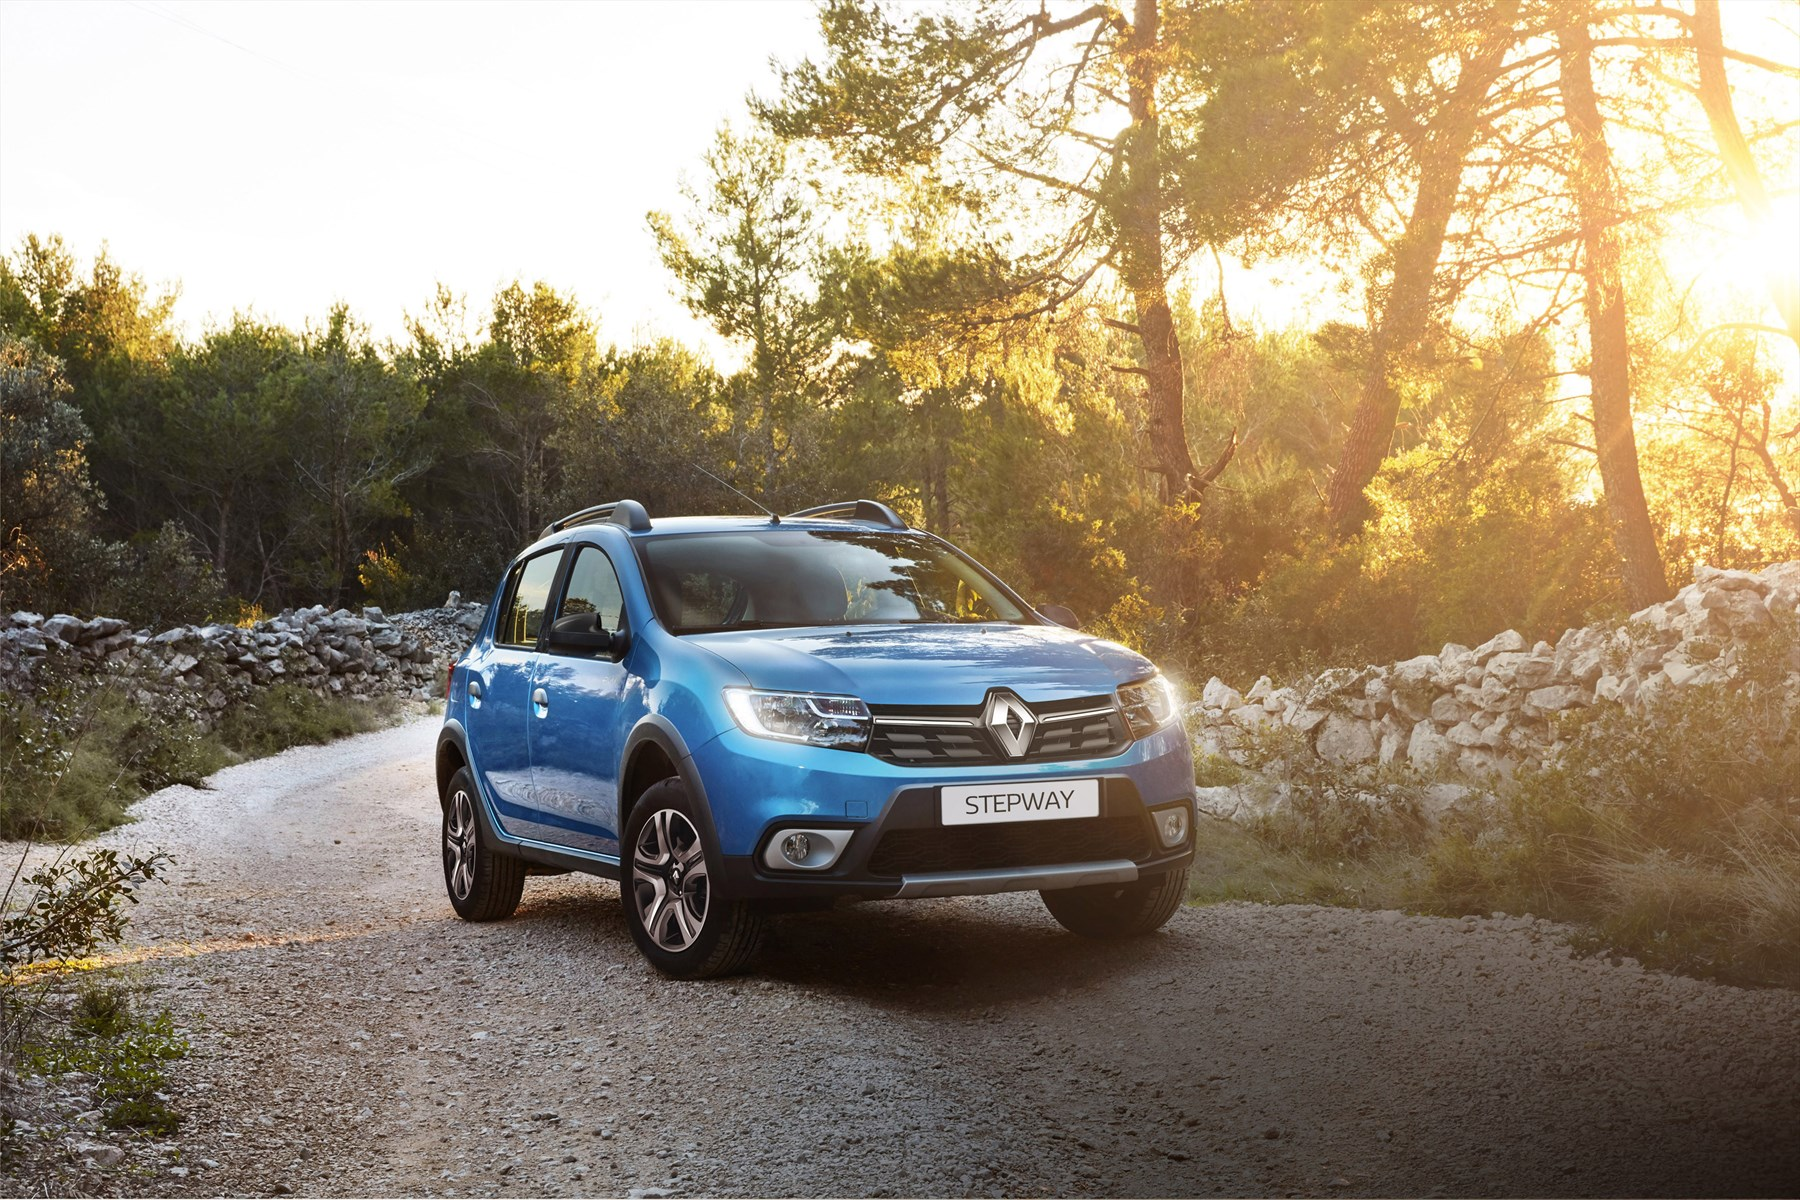 Renault Sandero: clearance, features of its technical characteristics